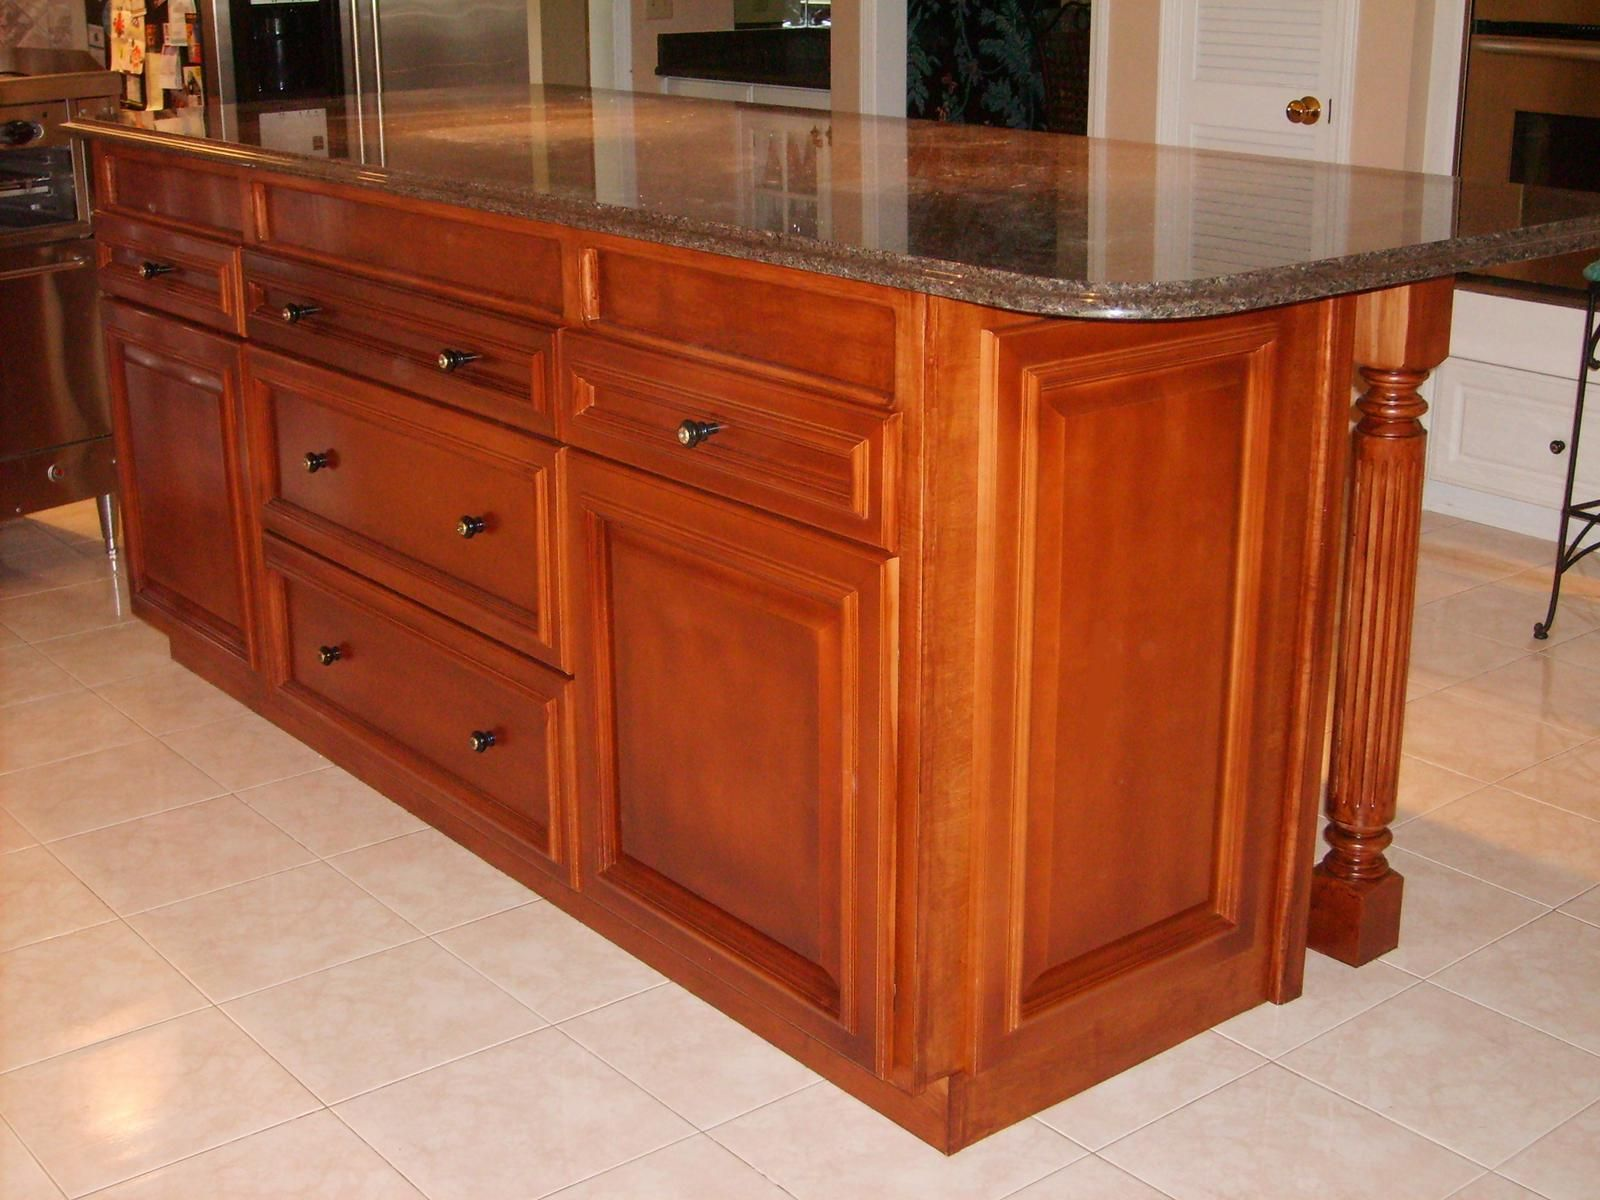 Handmade Custom Maple Kitchen Island By Dk Kustoms Inc. Best Room To Stay In Great Wolf Lodge Pa. Design You Own Room. Designer Family Rooms. Emory University Dorm Rooms. Ikea Closet Doors As Room Divider. Room Candy Games. Decorative Screen Room Dividers. Black Dining Room Furniture